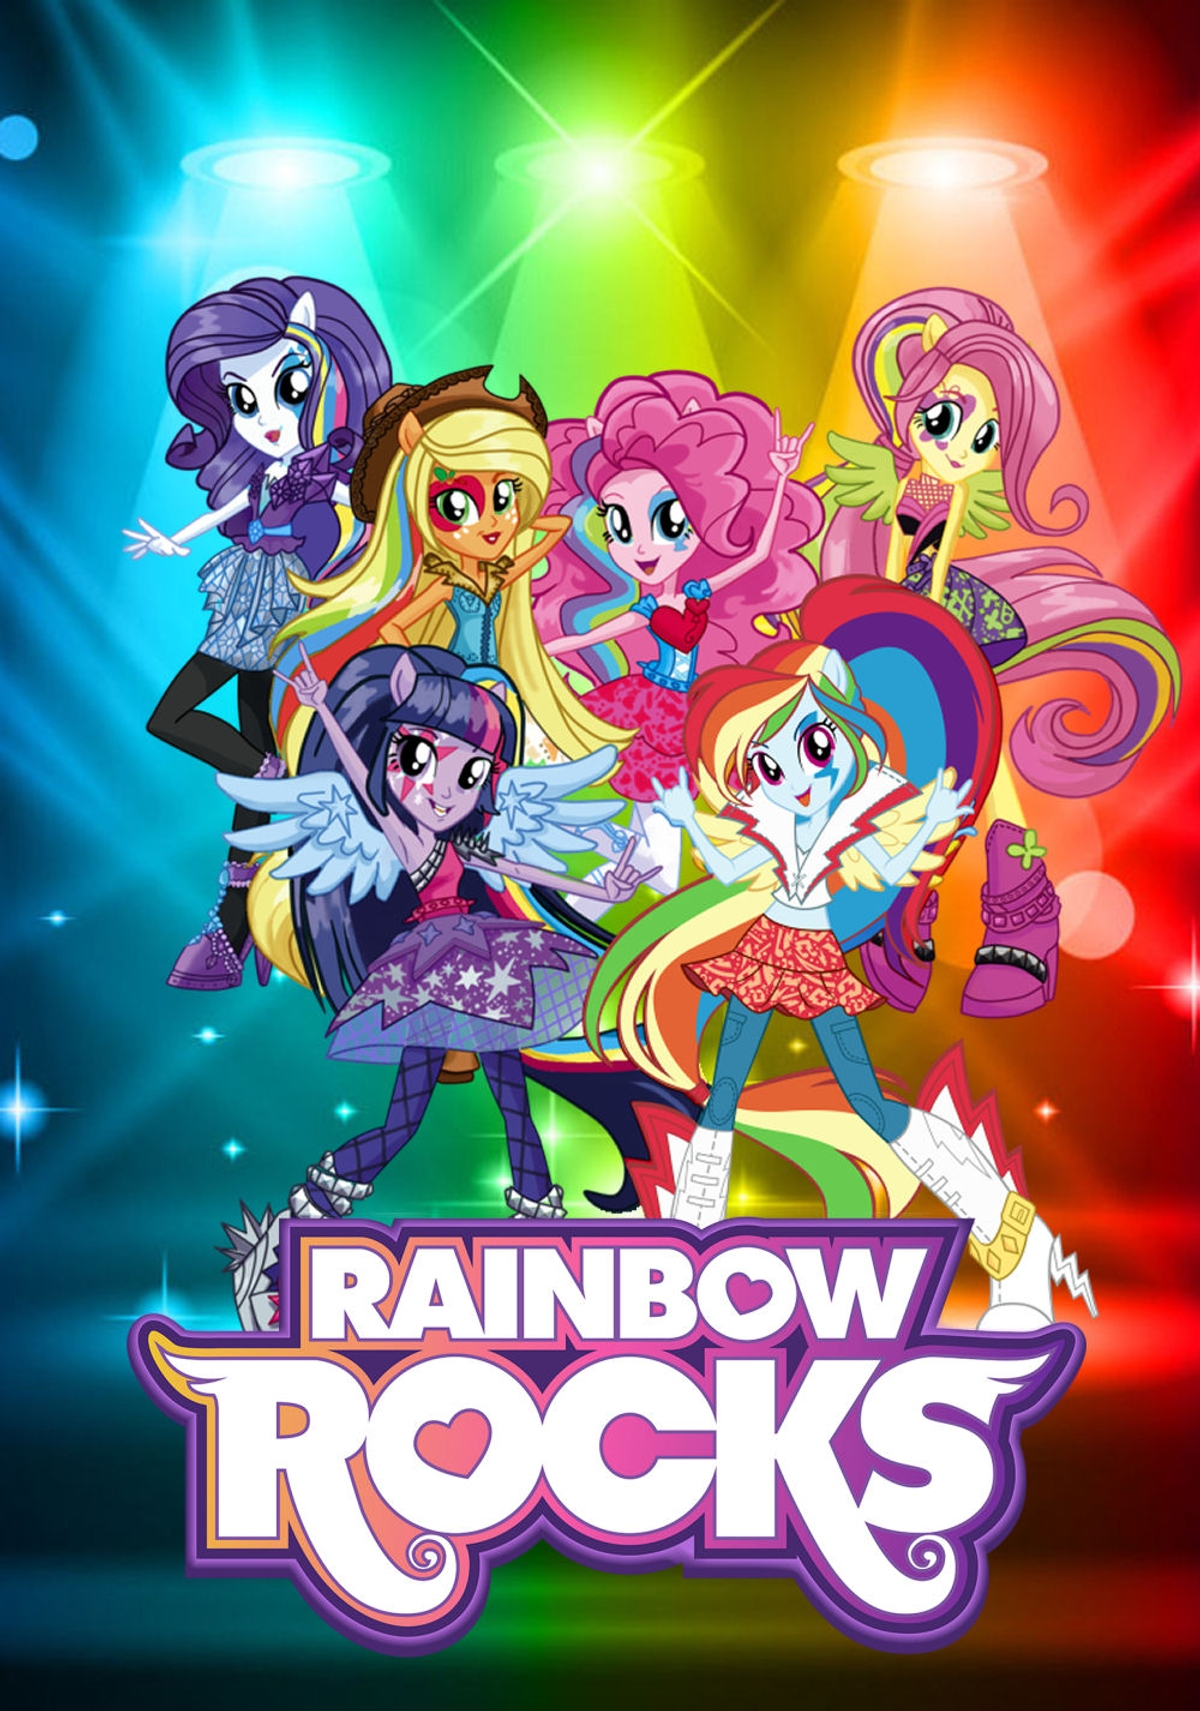 Pin by TW1L1GHT SP4RKL3 on Rarity ( EG ) | My little pony